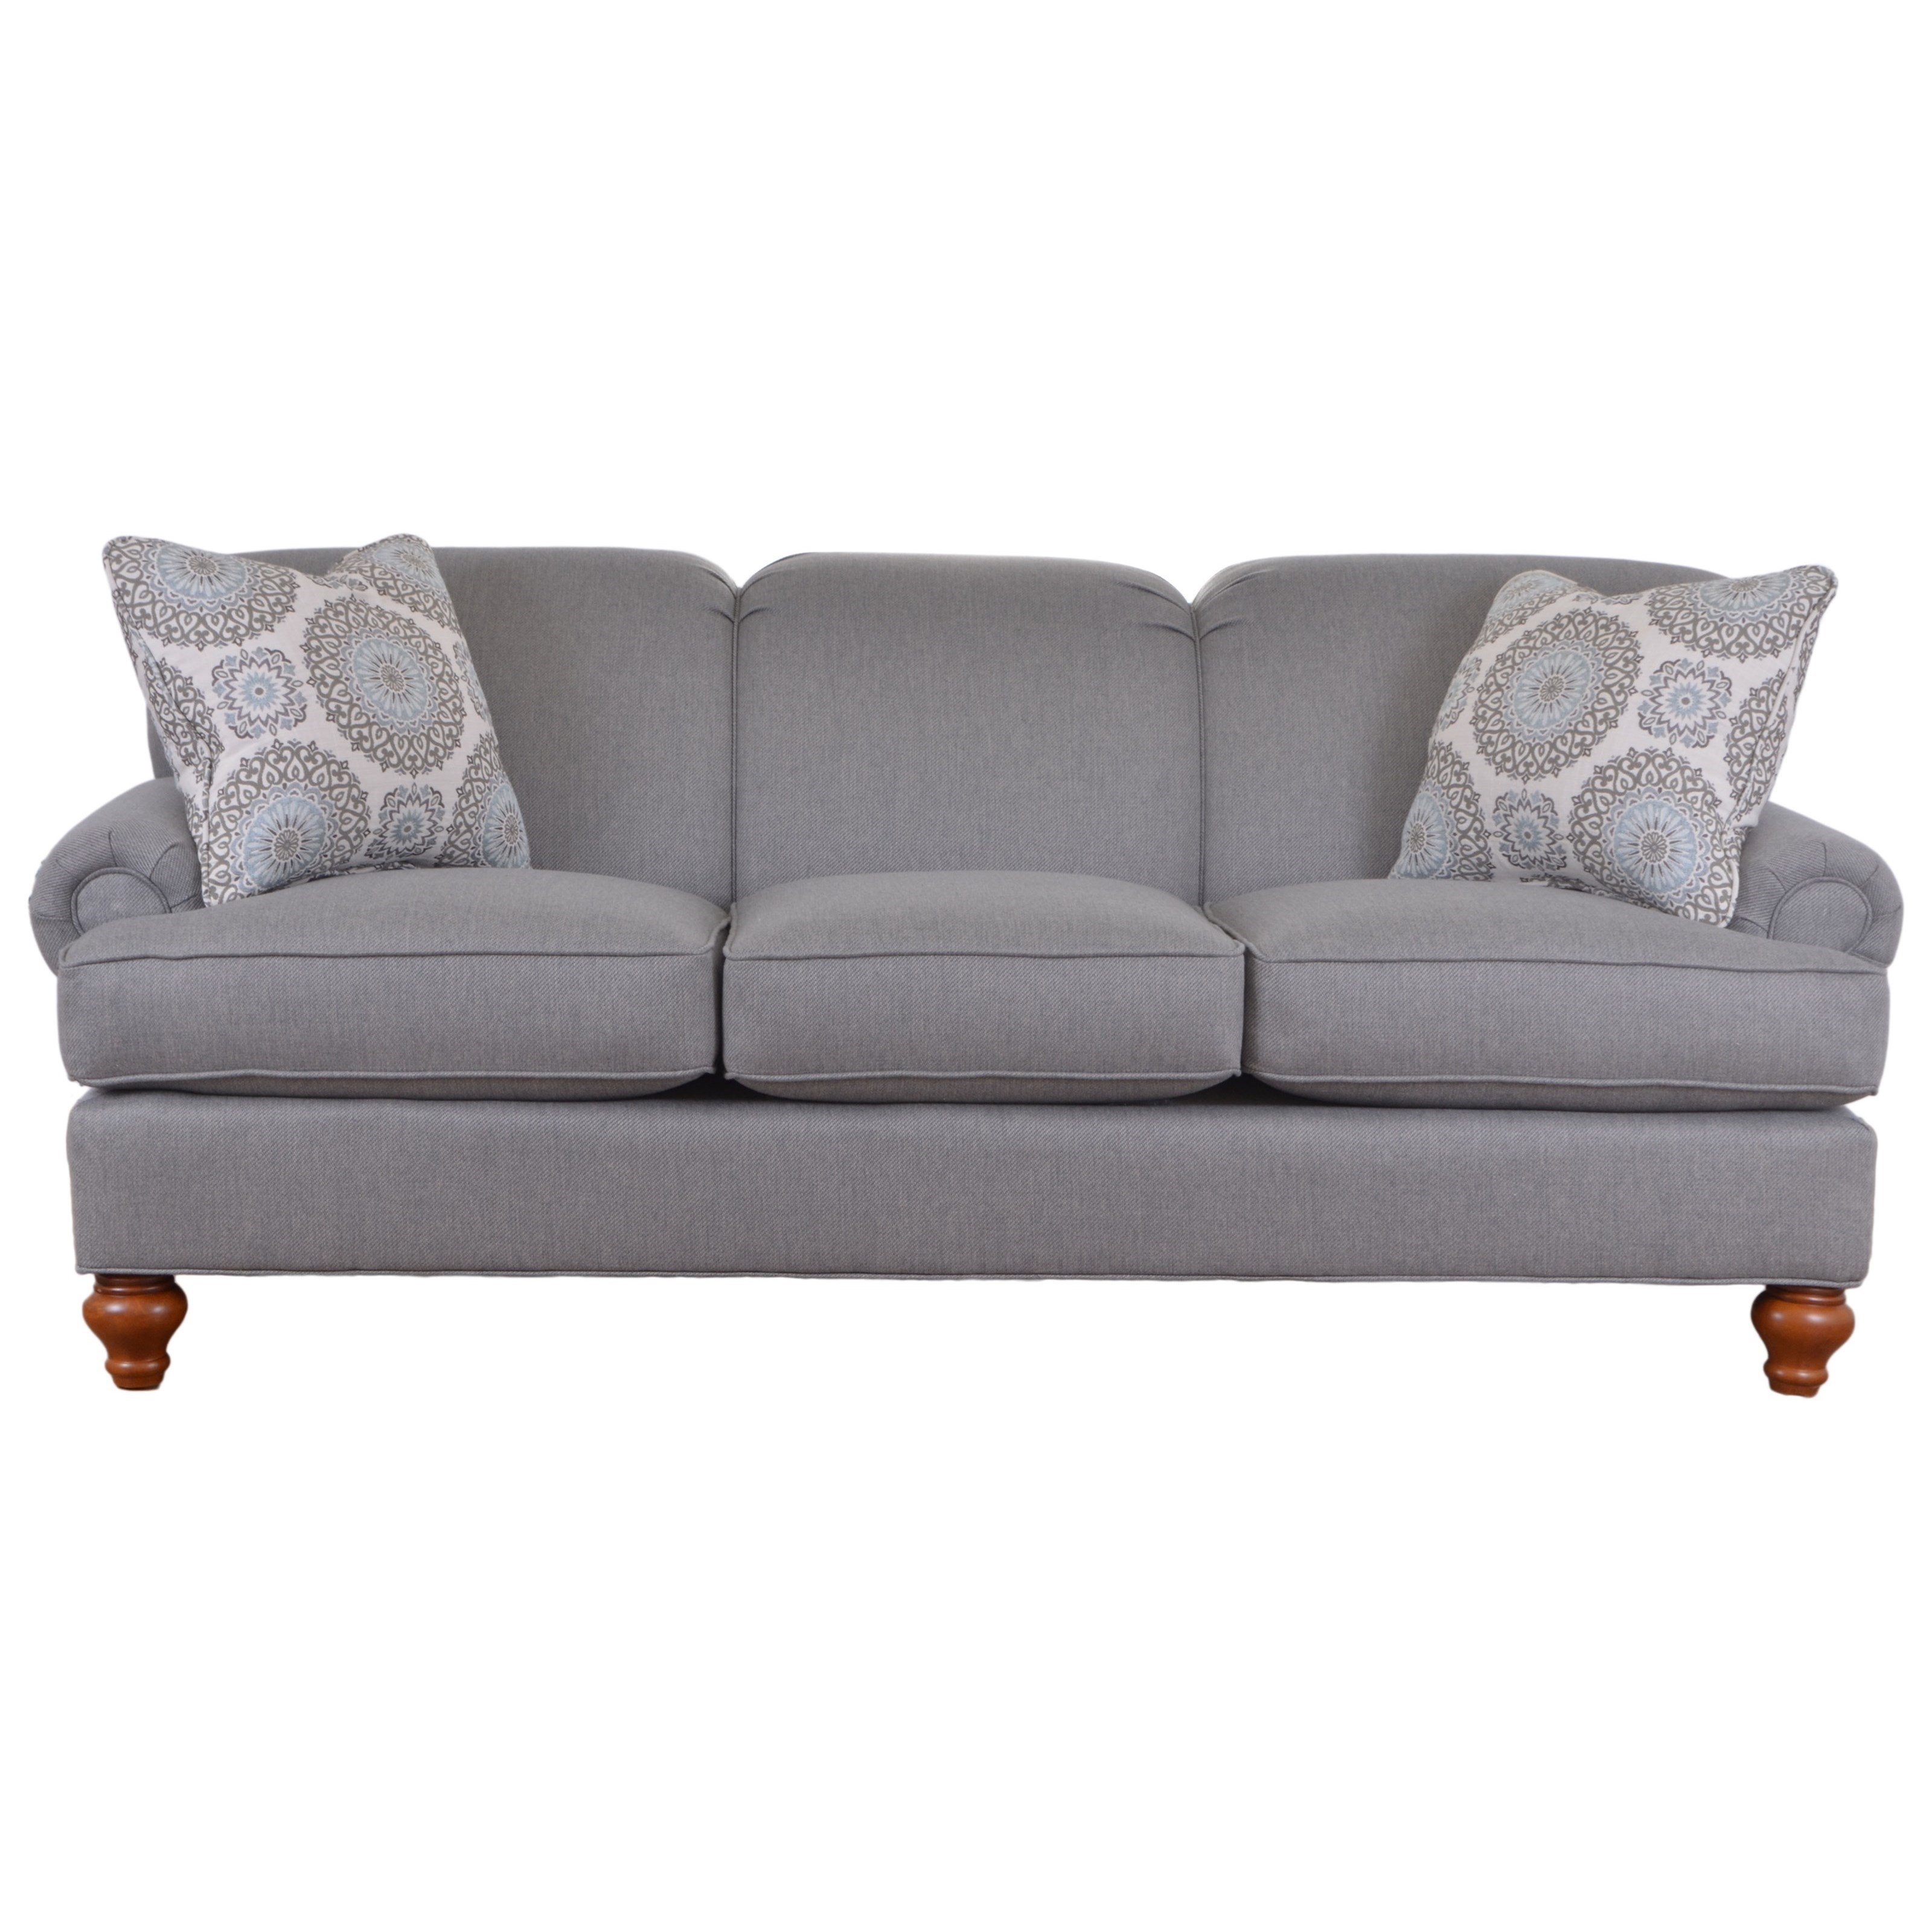 Ordinaire Hickorycraft 7047 Traditional Sofa With Turned Wood Legs